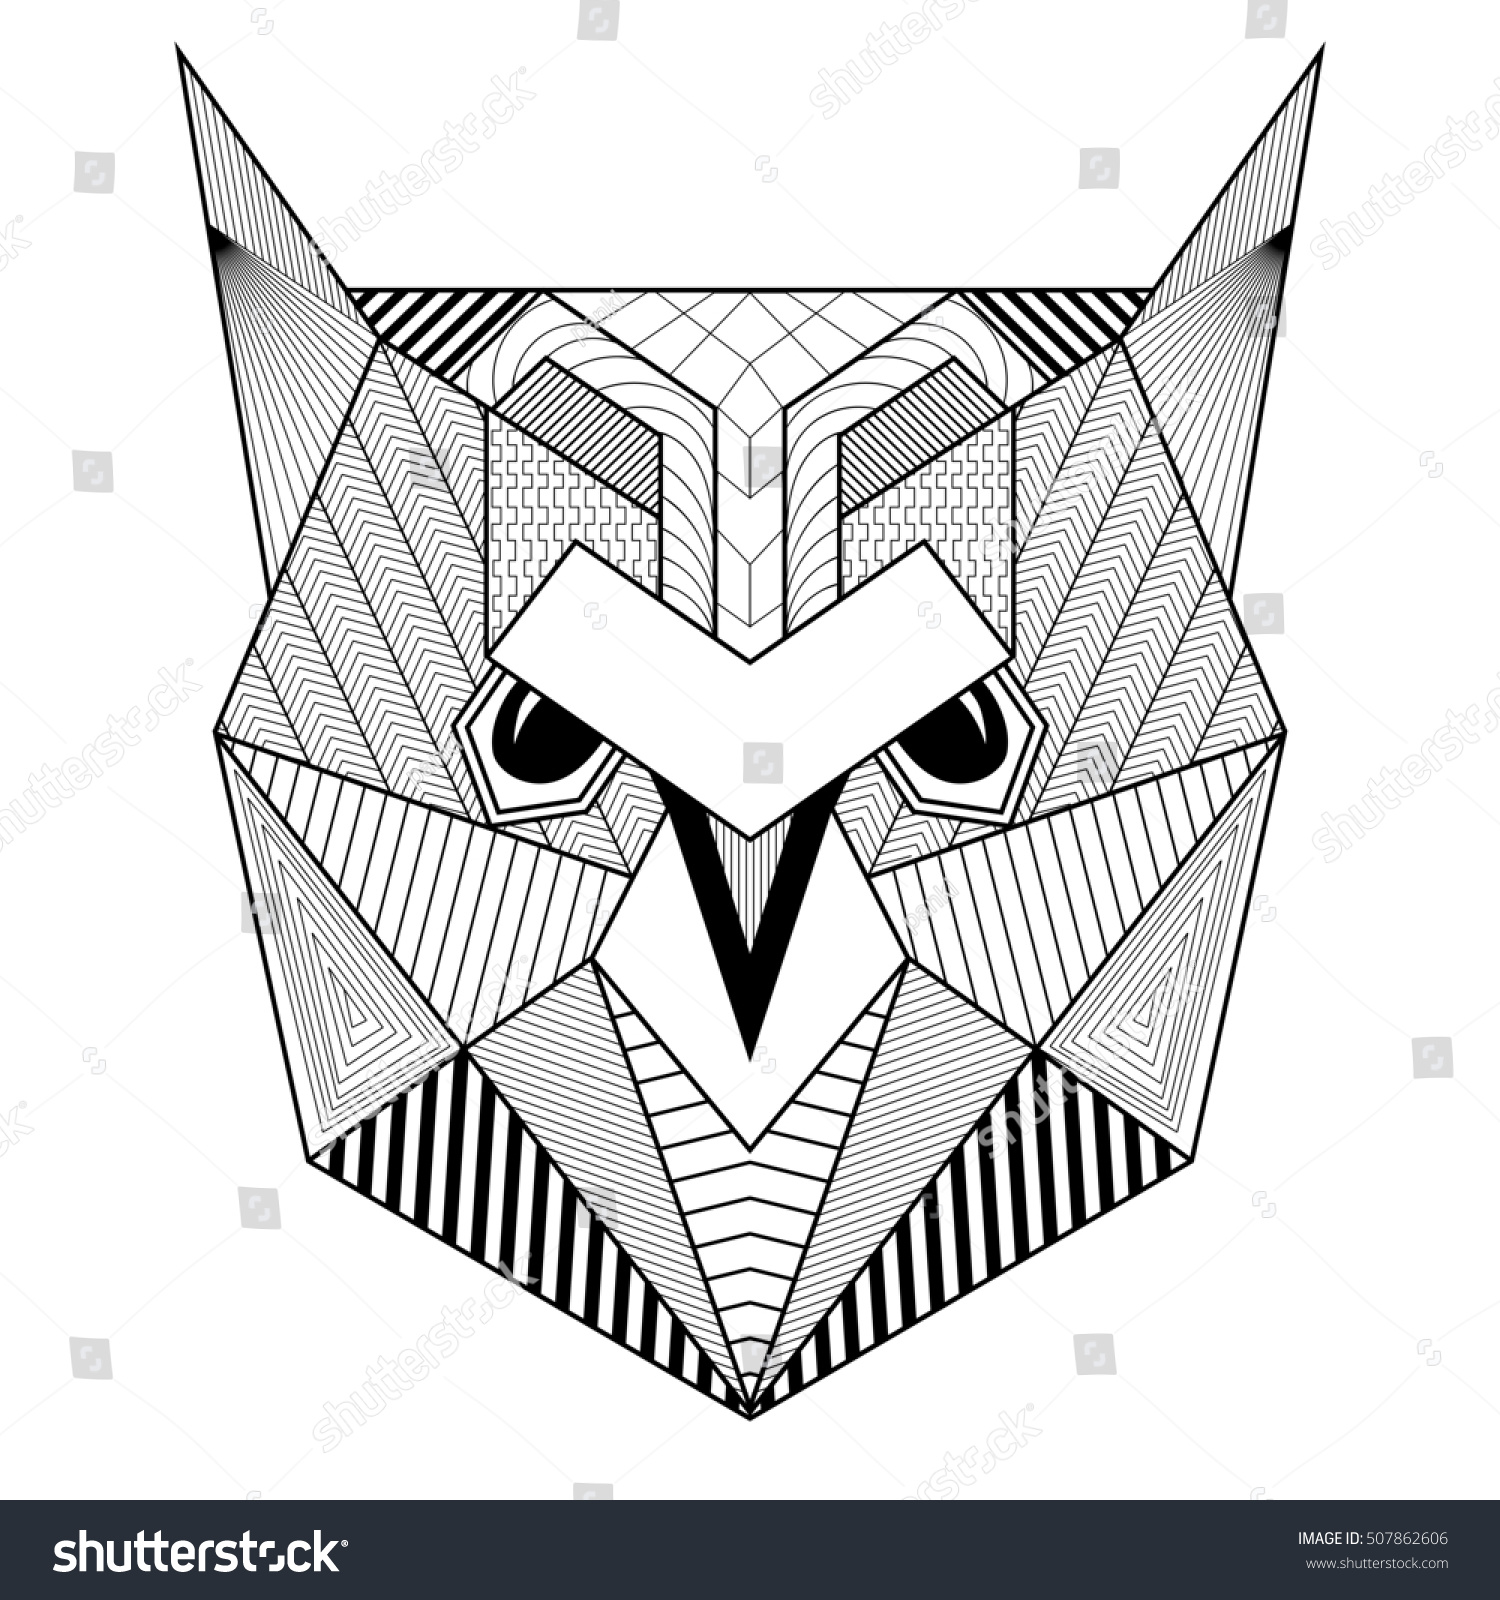 Coloring Page A4 Vector Colorful Zentangle Stylized